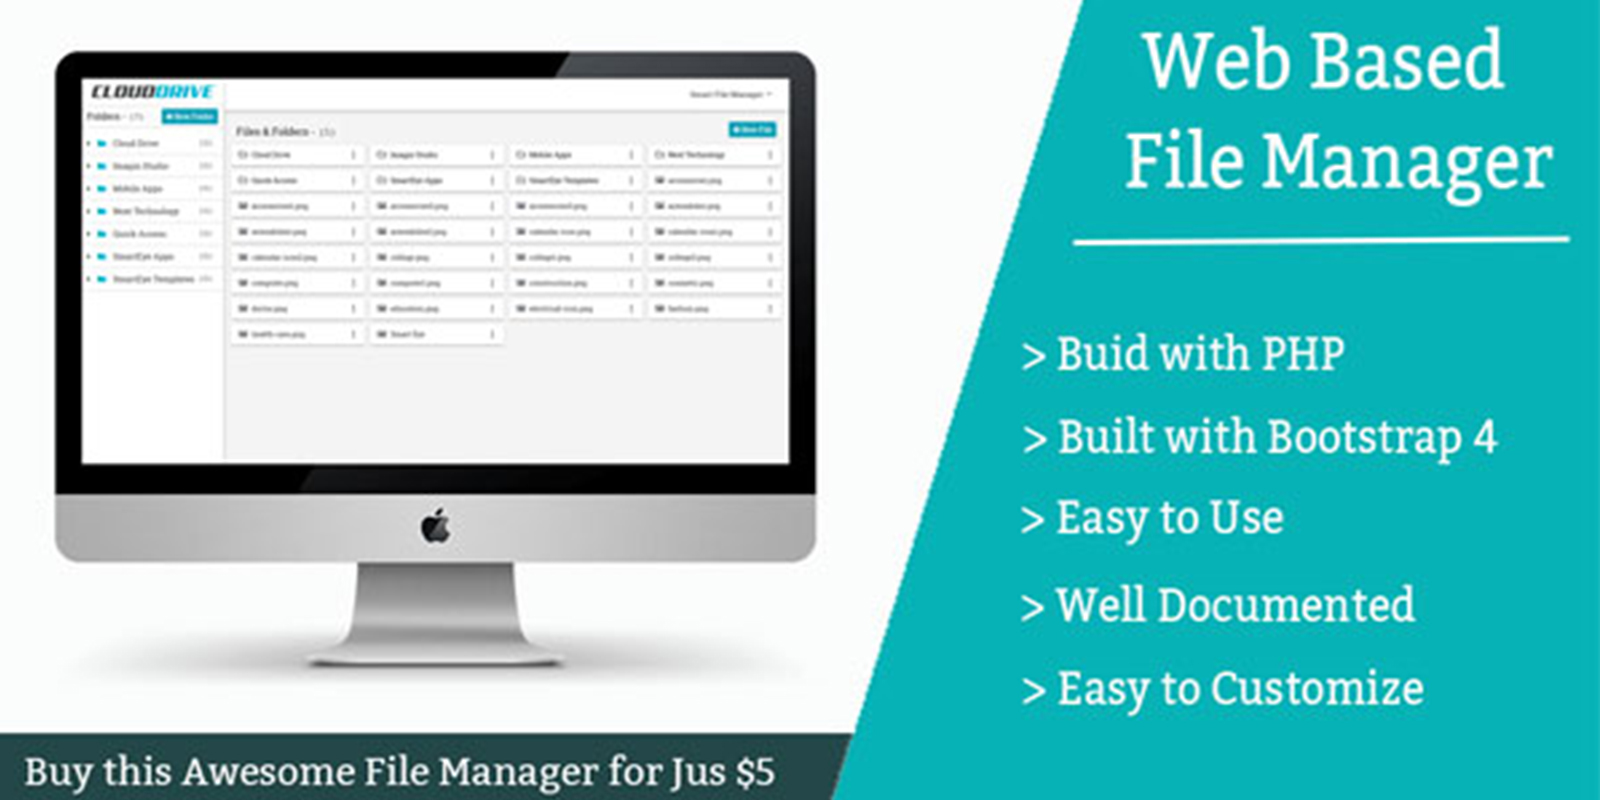 Smart File - Web Based File Manager PHP Script v.1.0